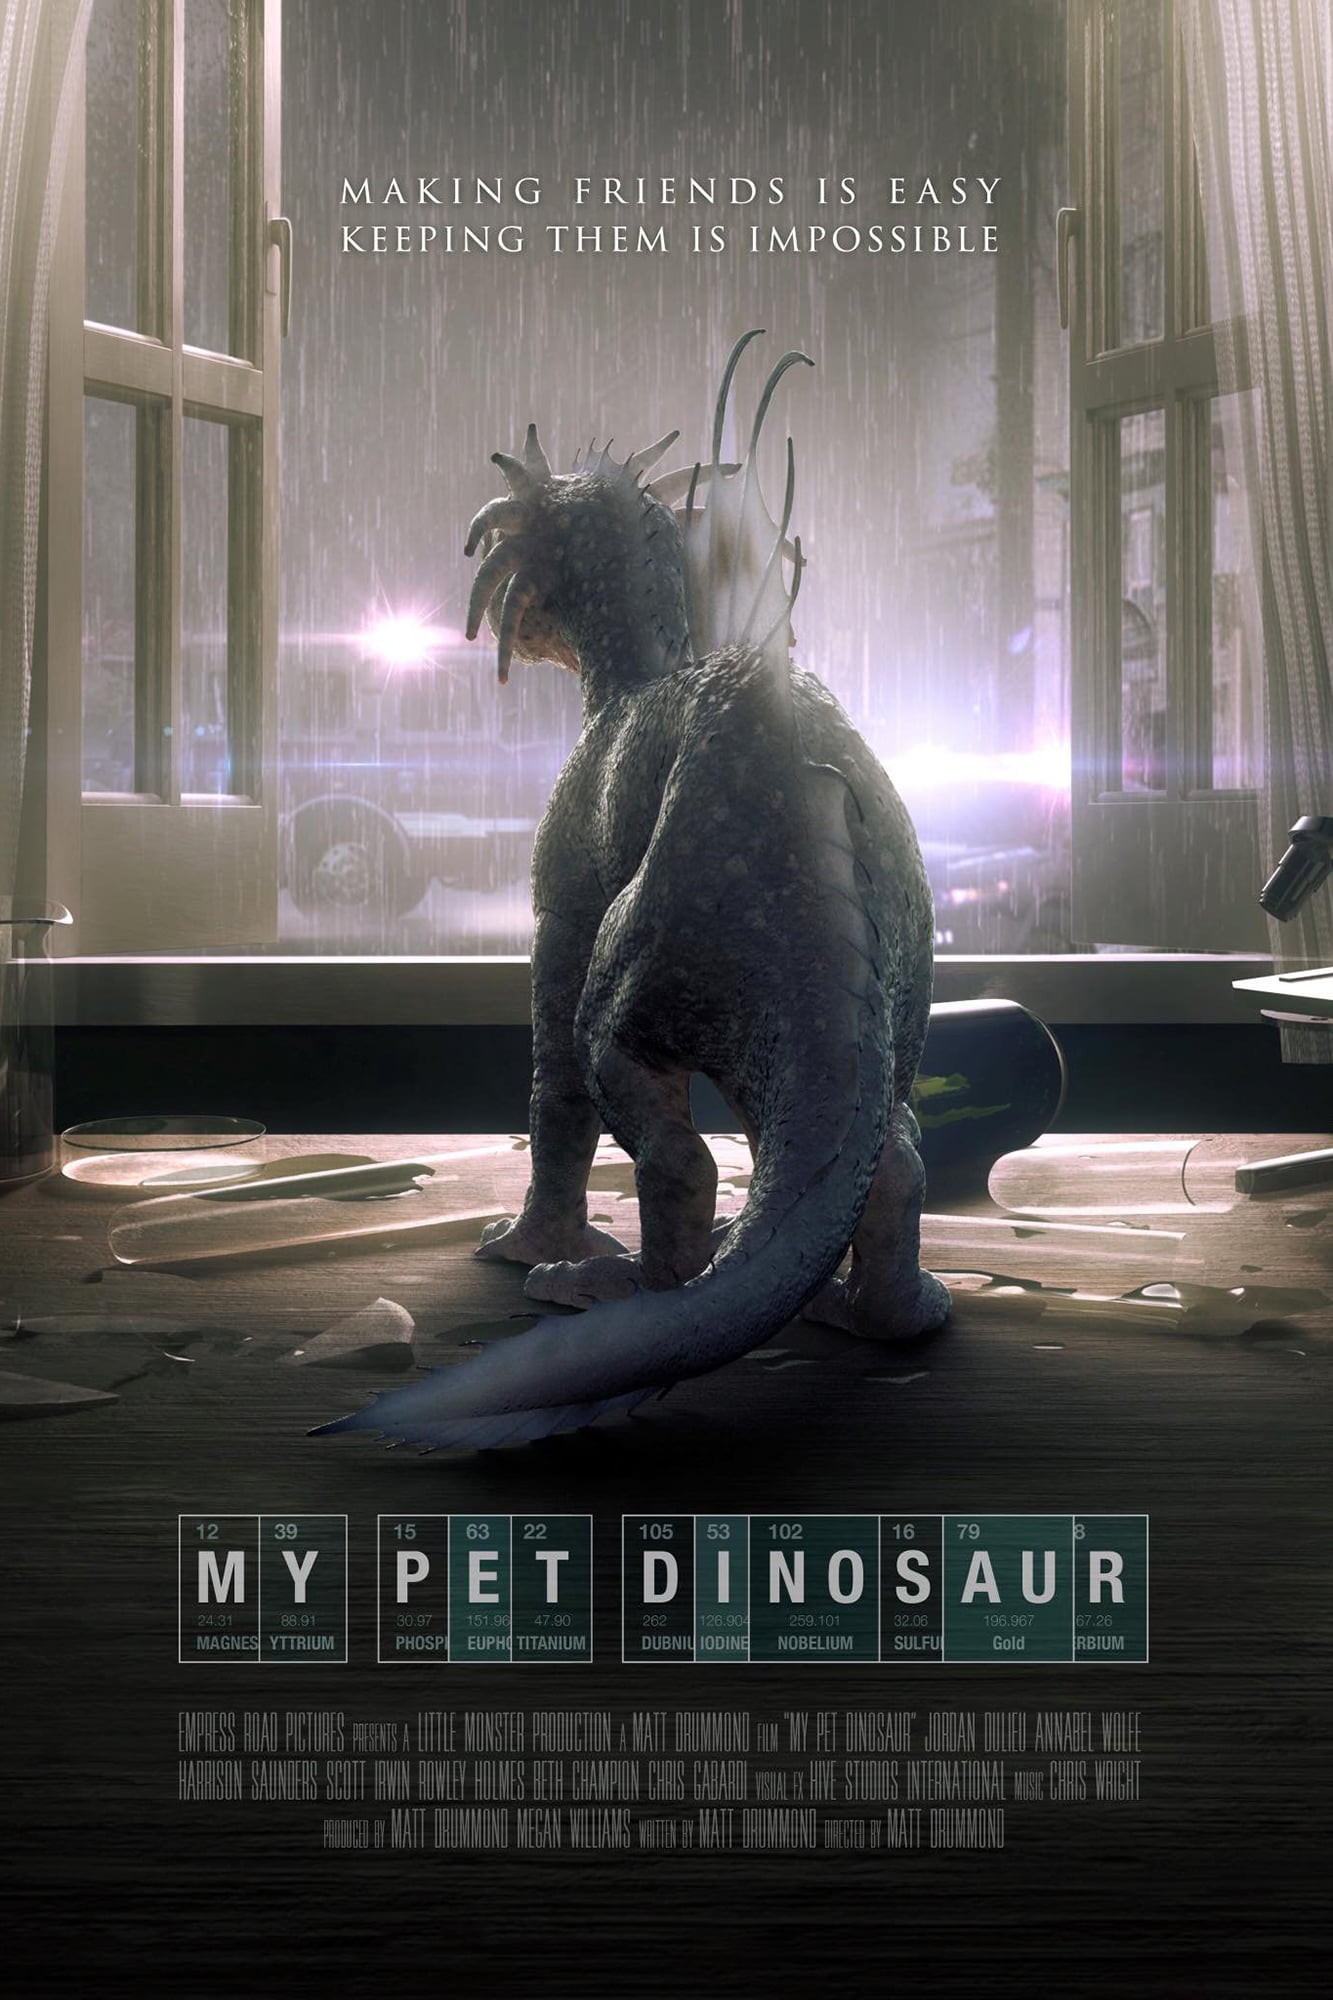 My Pet Dinosaur 2017 Posters The Movie Database Tmdb